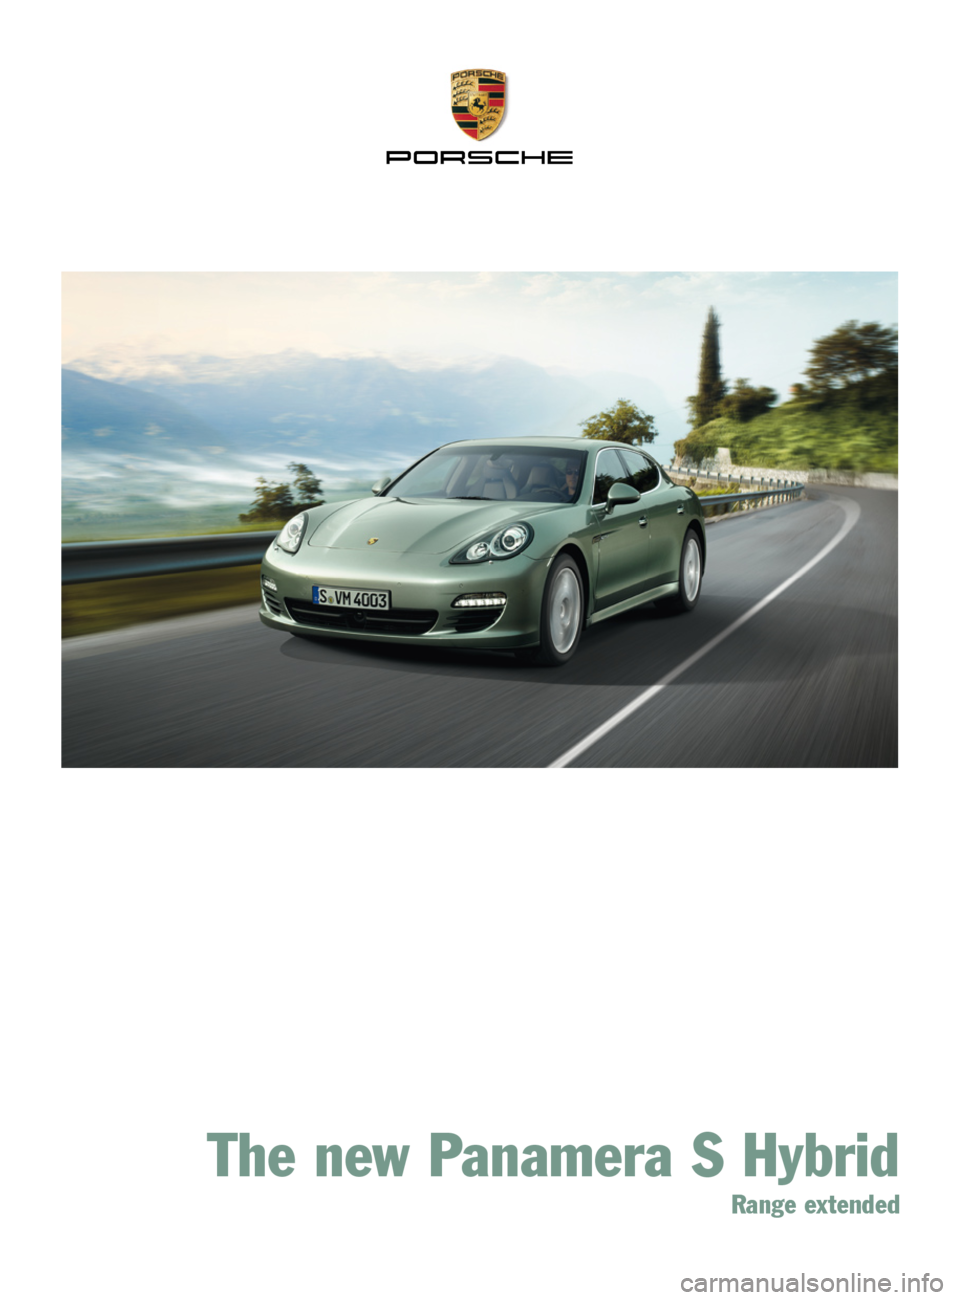 PORSCHE PANAMERA HYBRID 2010 1.G Information Manual The new Panamera S Hybrid Range extended